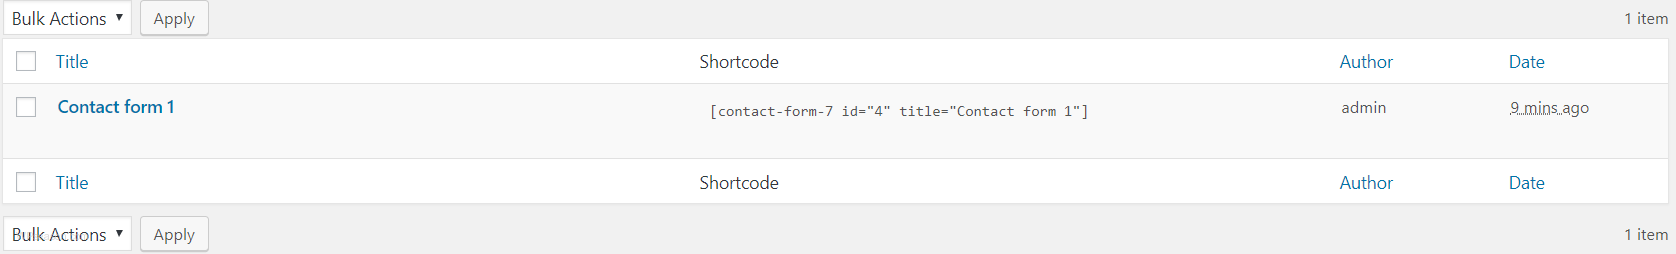 contact form 7 shortcode